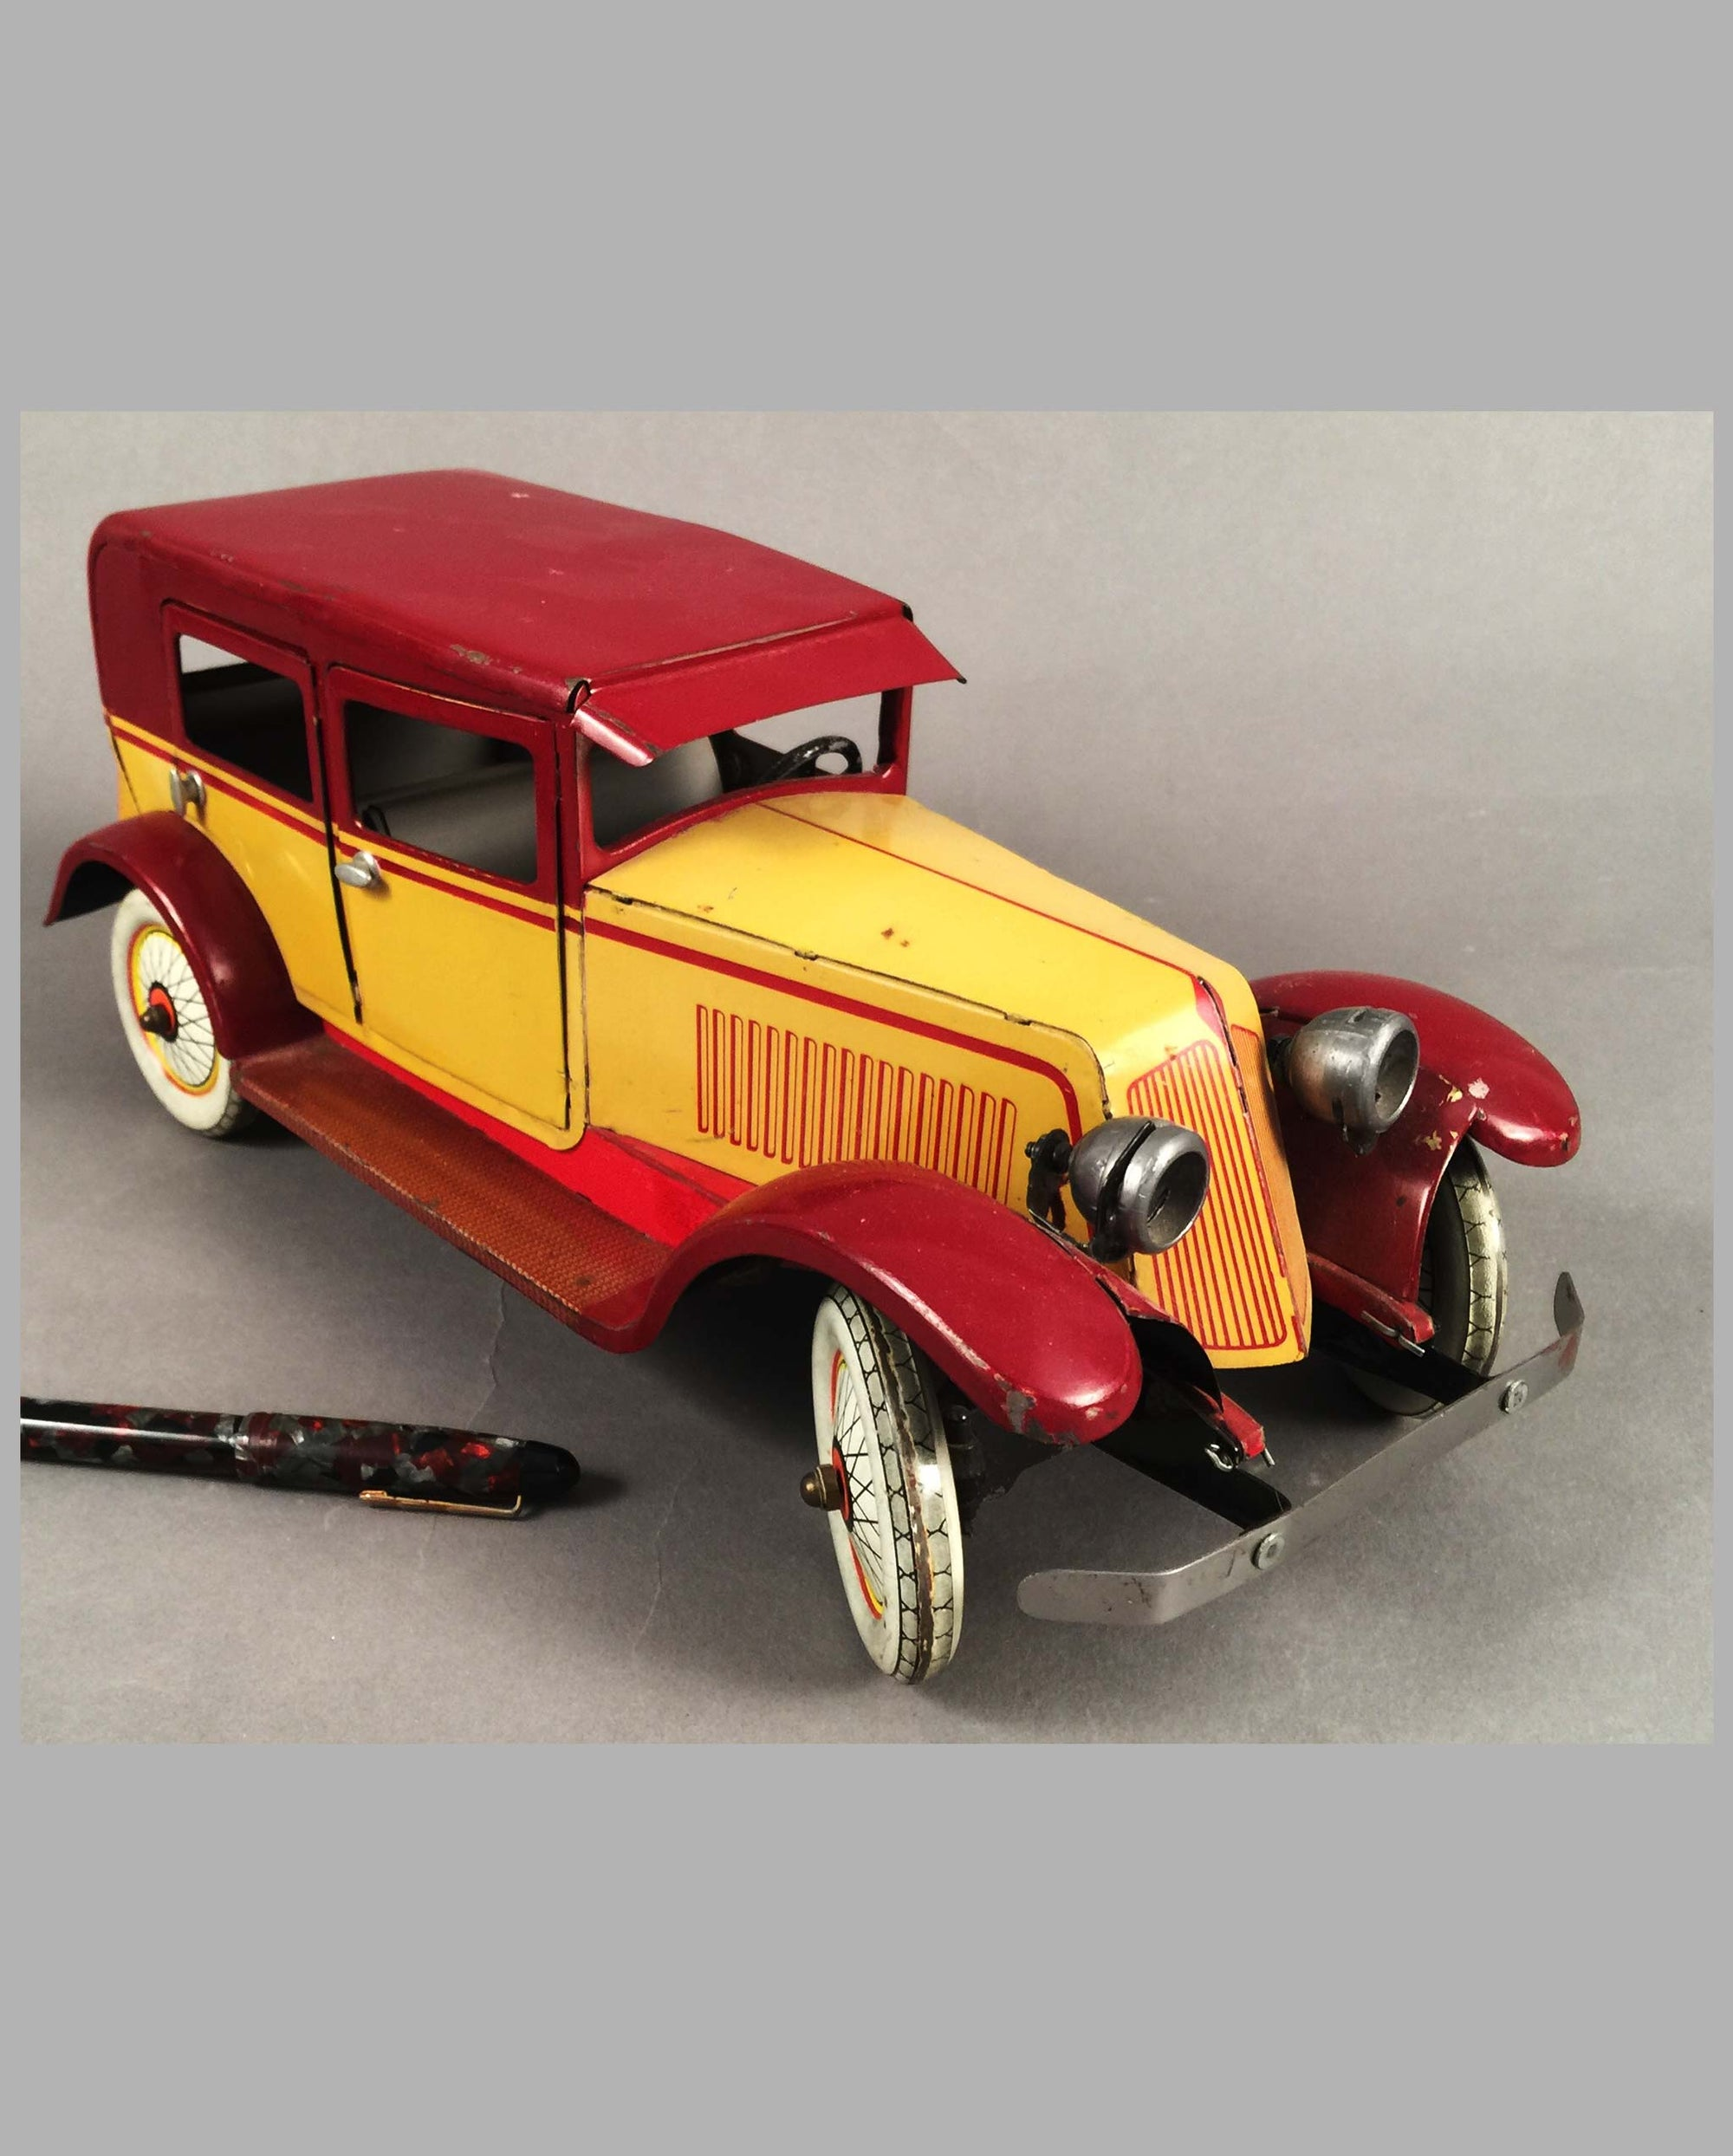 Renault Limousine tin toy by J.E.P. France